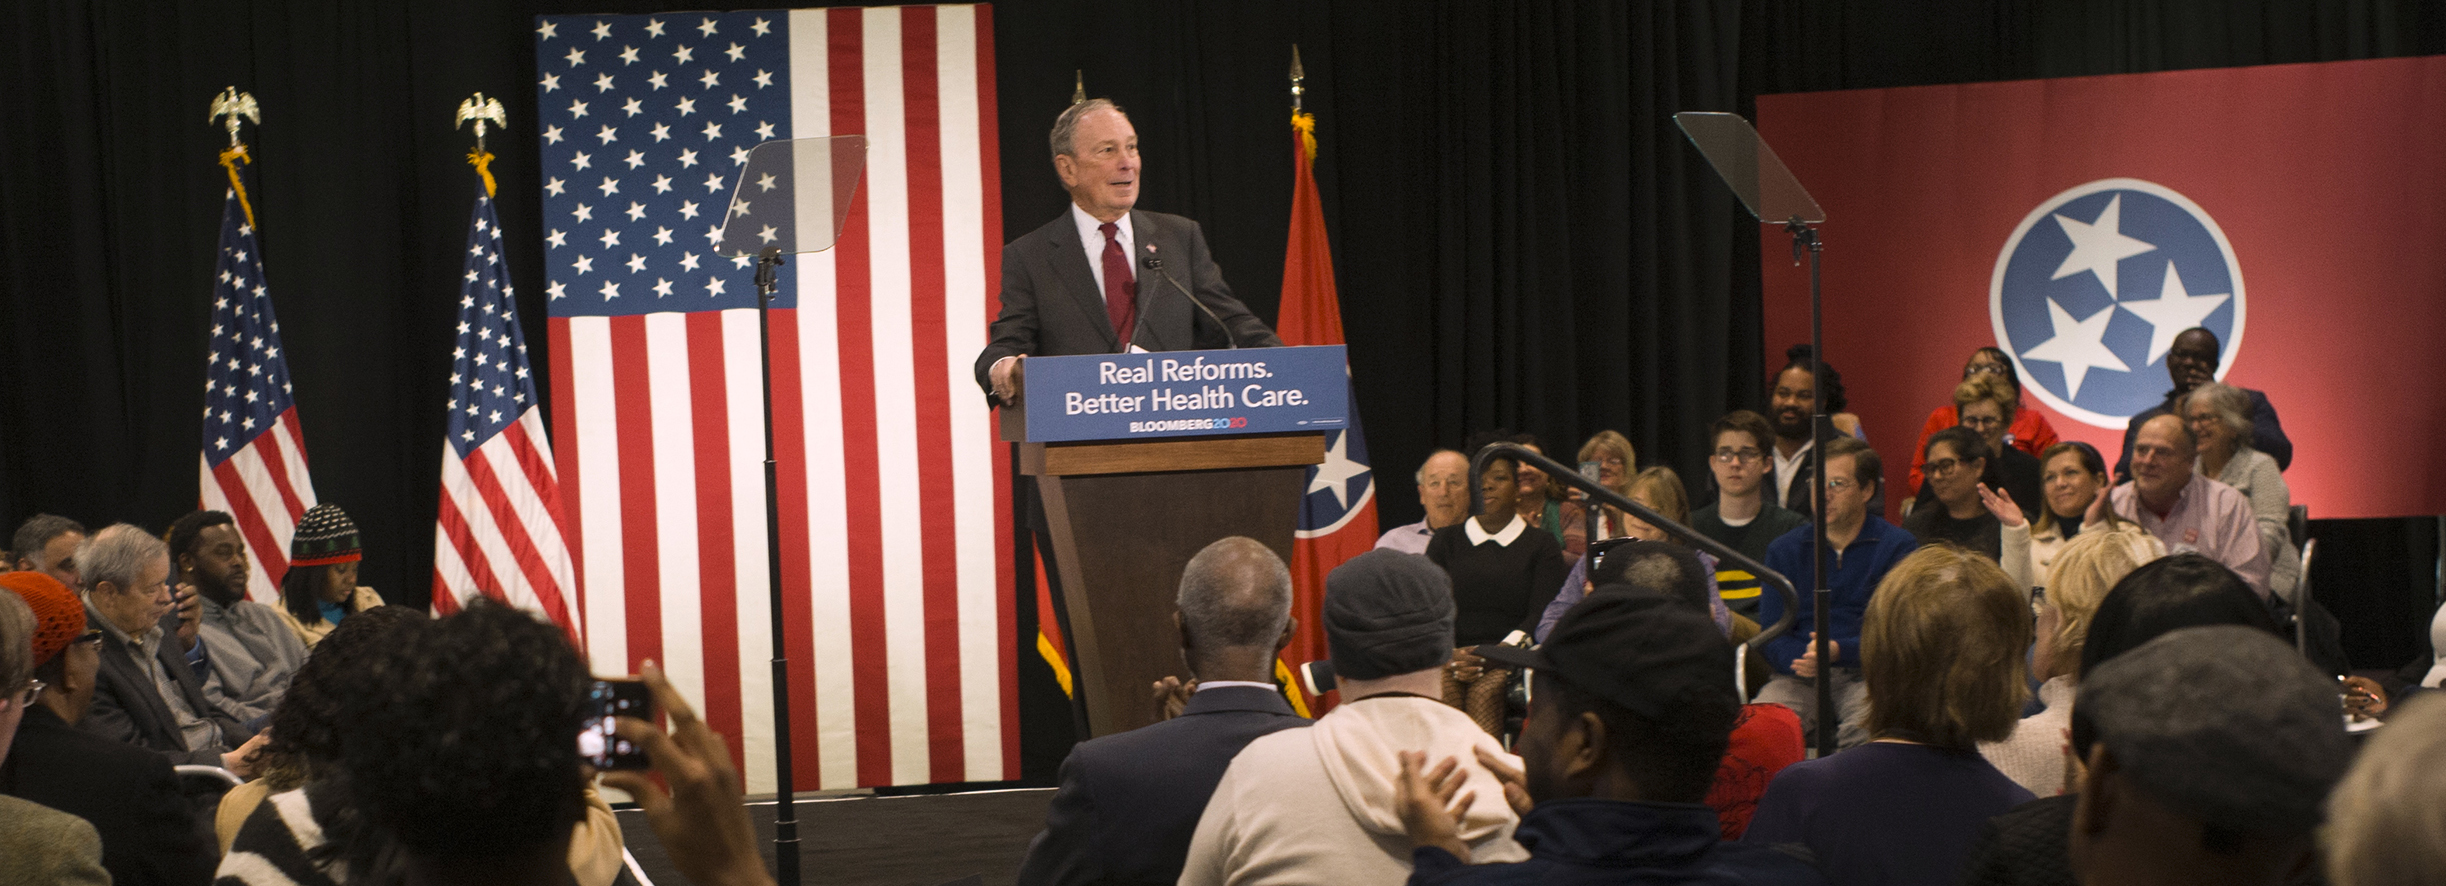 Mike comes to Memphis, Tennessee, to unveil his agenda for better, affordable health care.